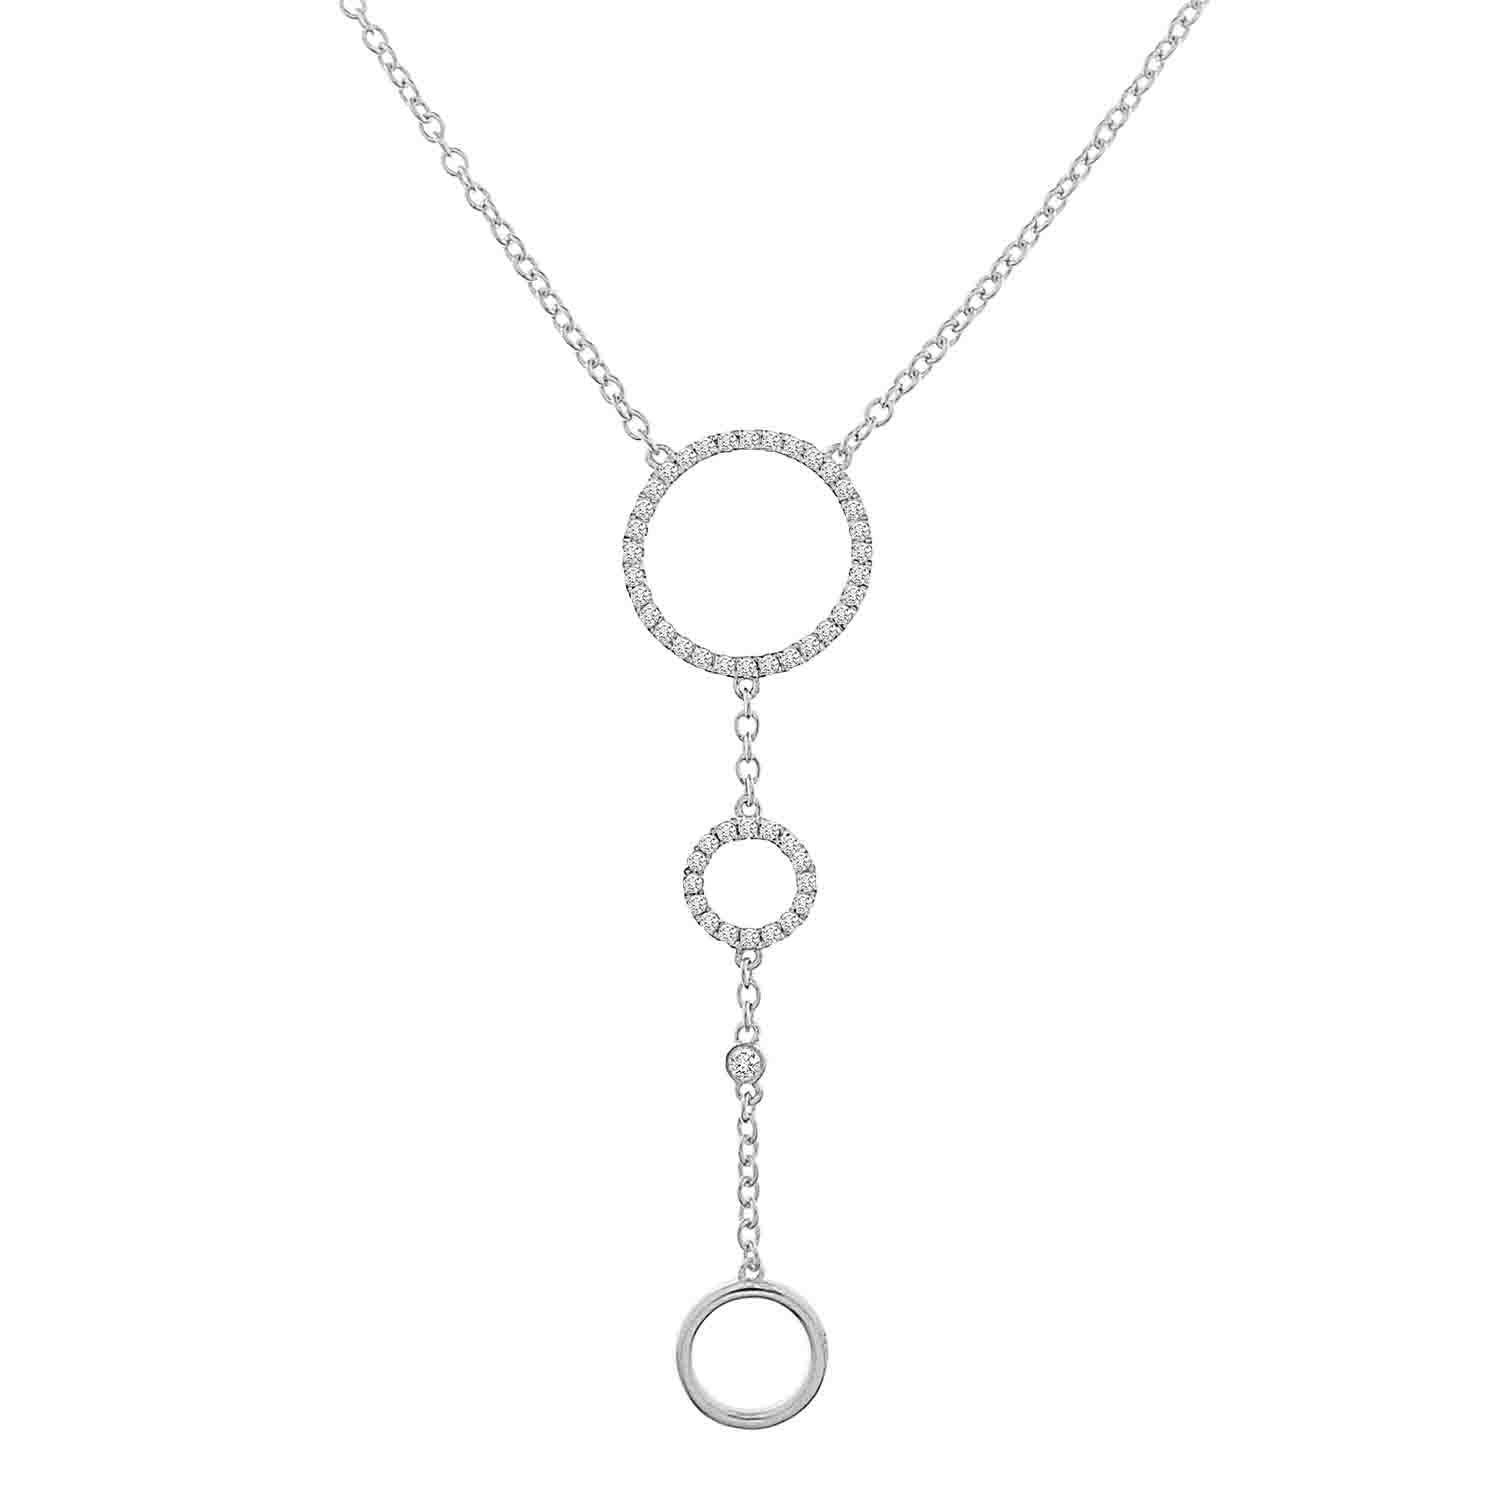 White Gold Diamond Lariat Necklace - Crestwood Jewelers